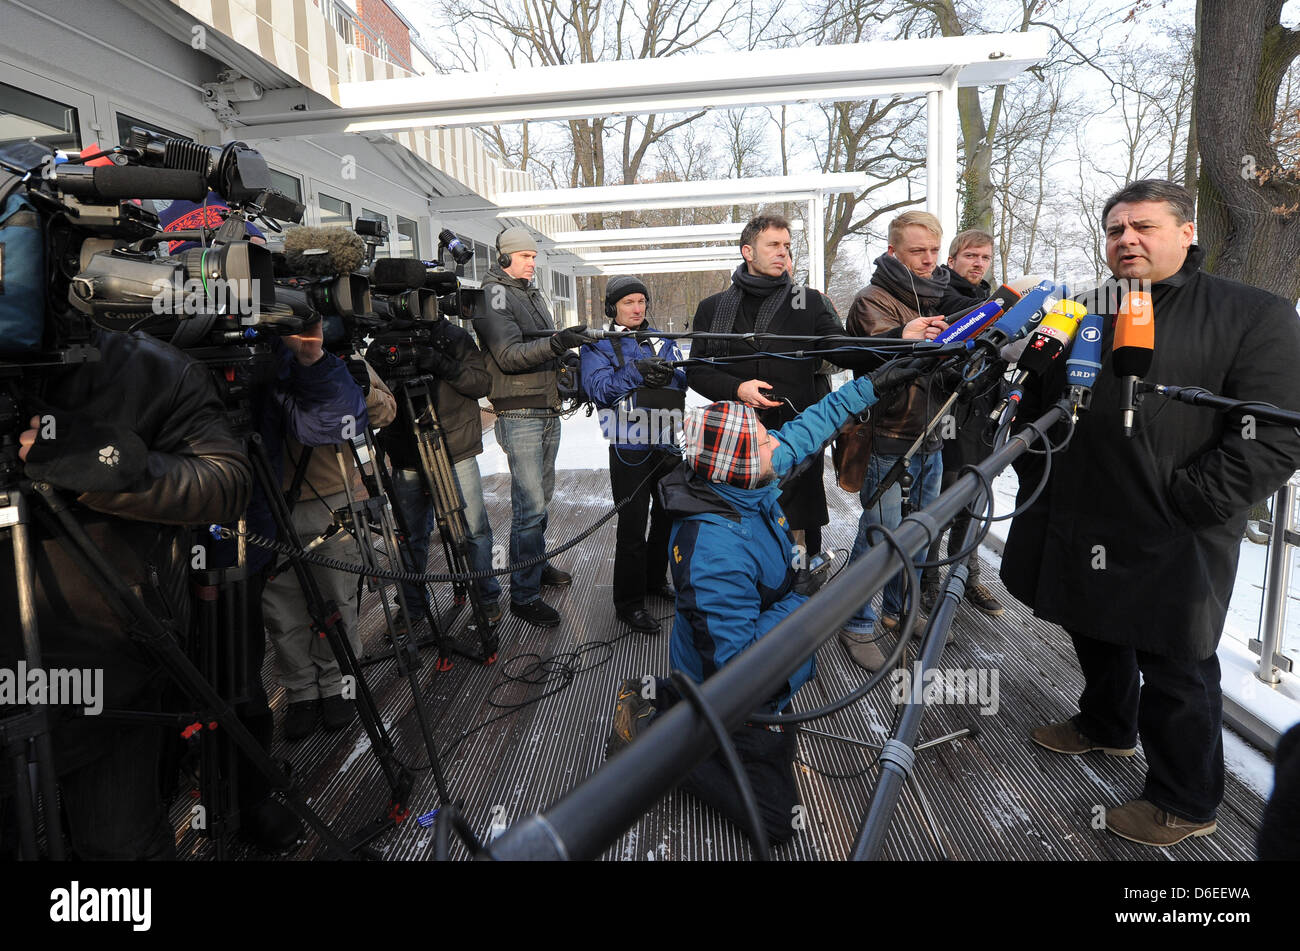 The chairman of Germany's Social Democratic Party (SPD) Sigmar Gabriel (R) gives an interview at his party's first convention in 2012 at Inselhotel in Potsdam,Germany, 29 January 2012. Photo: Bernd Settnik Stock Photo